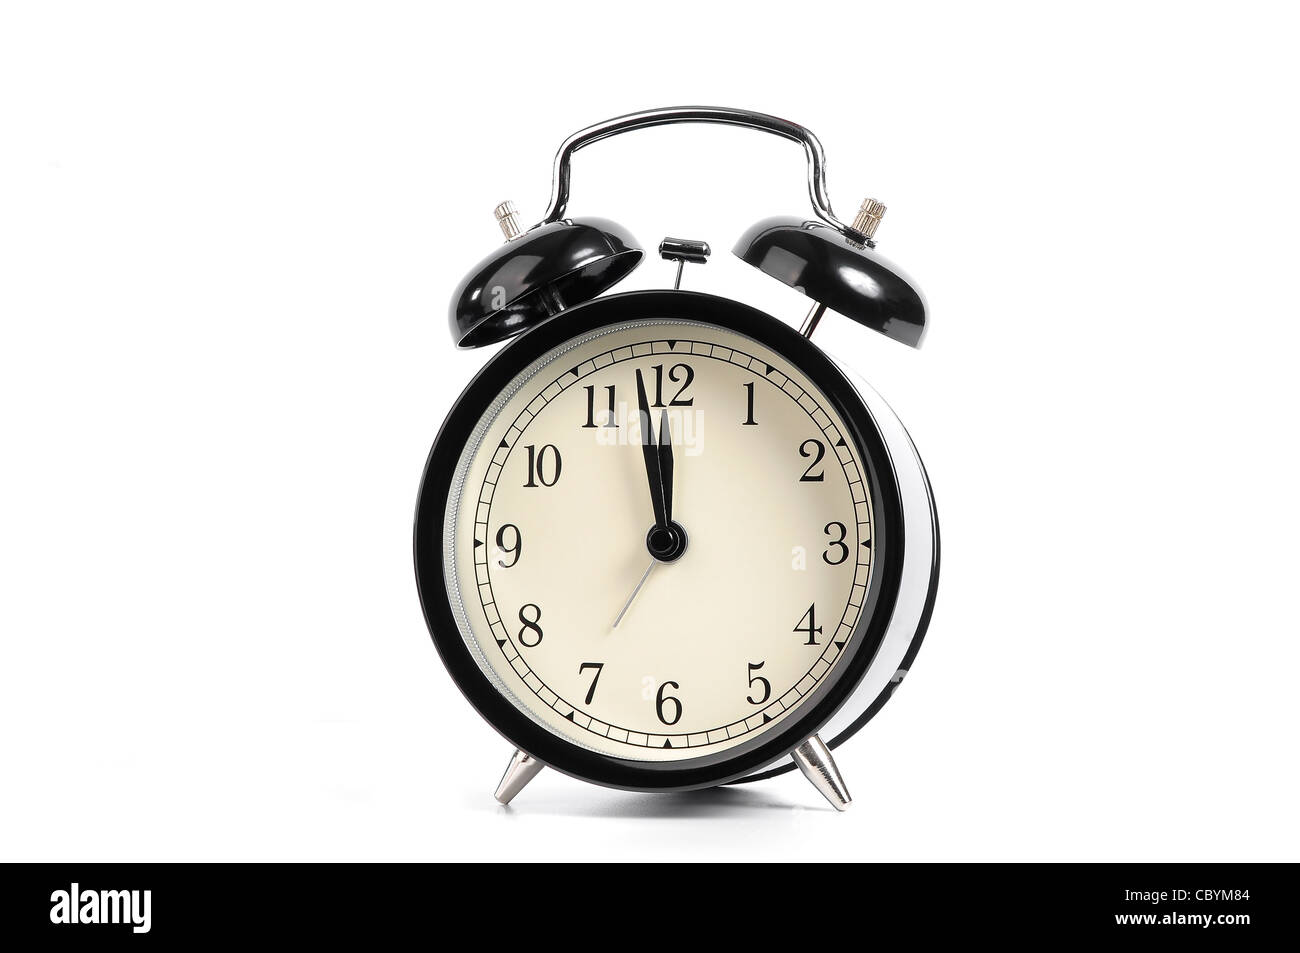 Old black alarm clock isolated on a white background - Stock Image